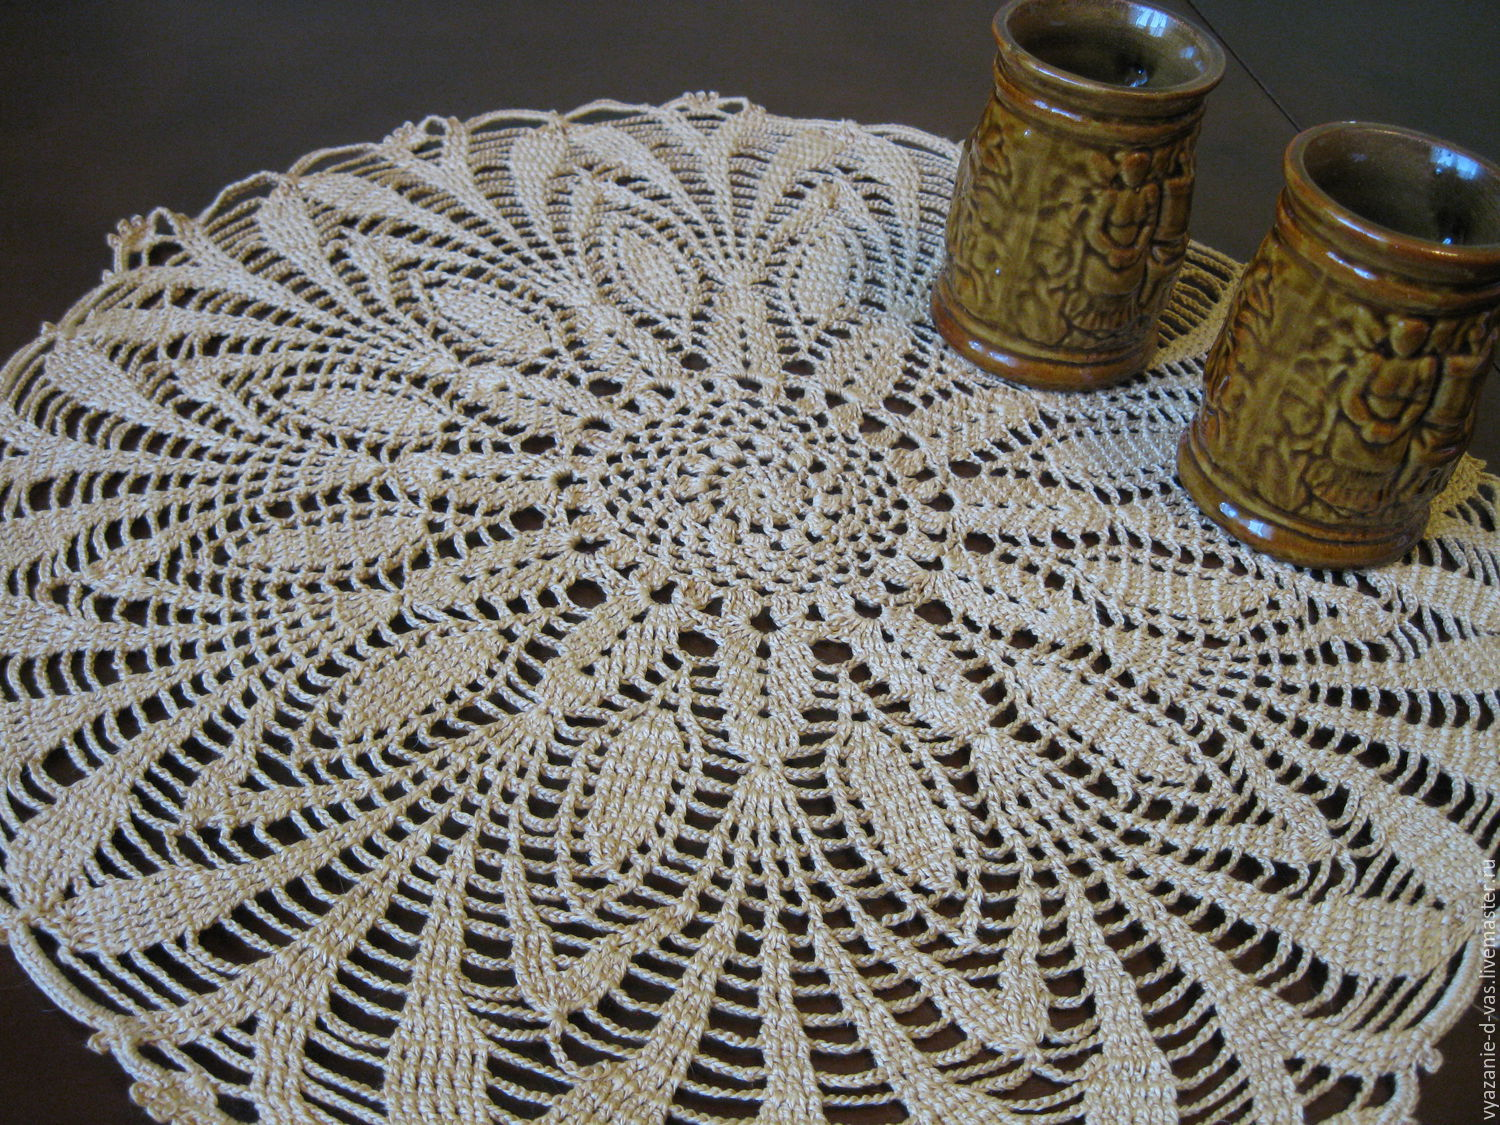 Crochet napkin round openwork beige gift for home cottages, Swipe, Voronezh,  Фото №1